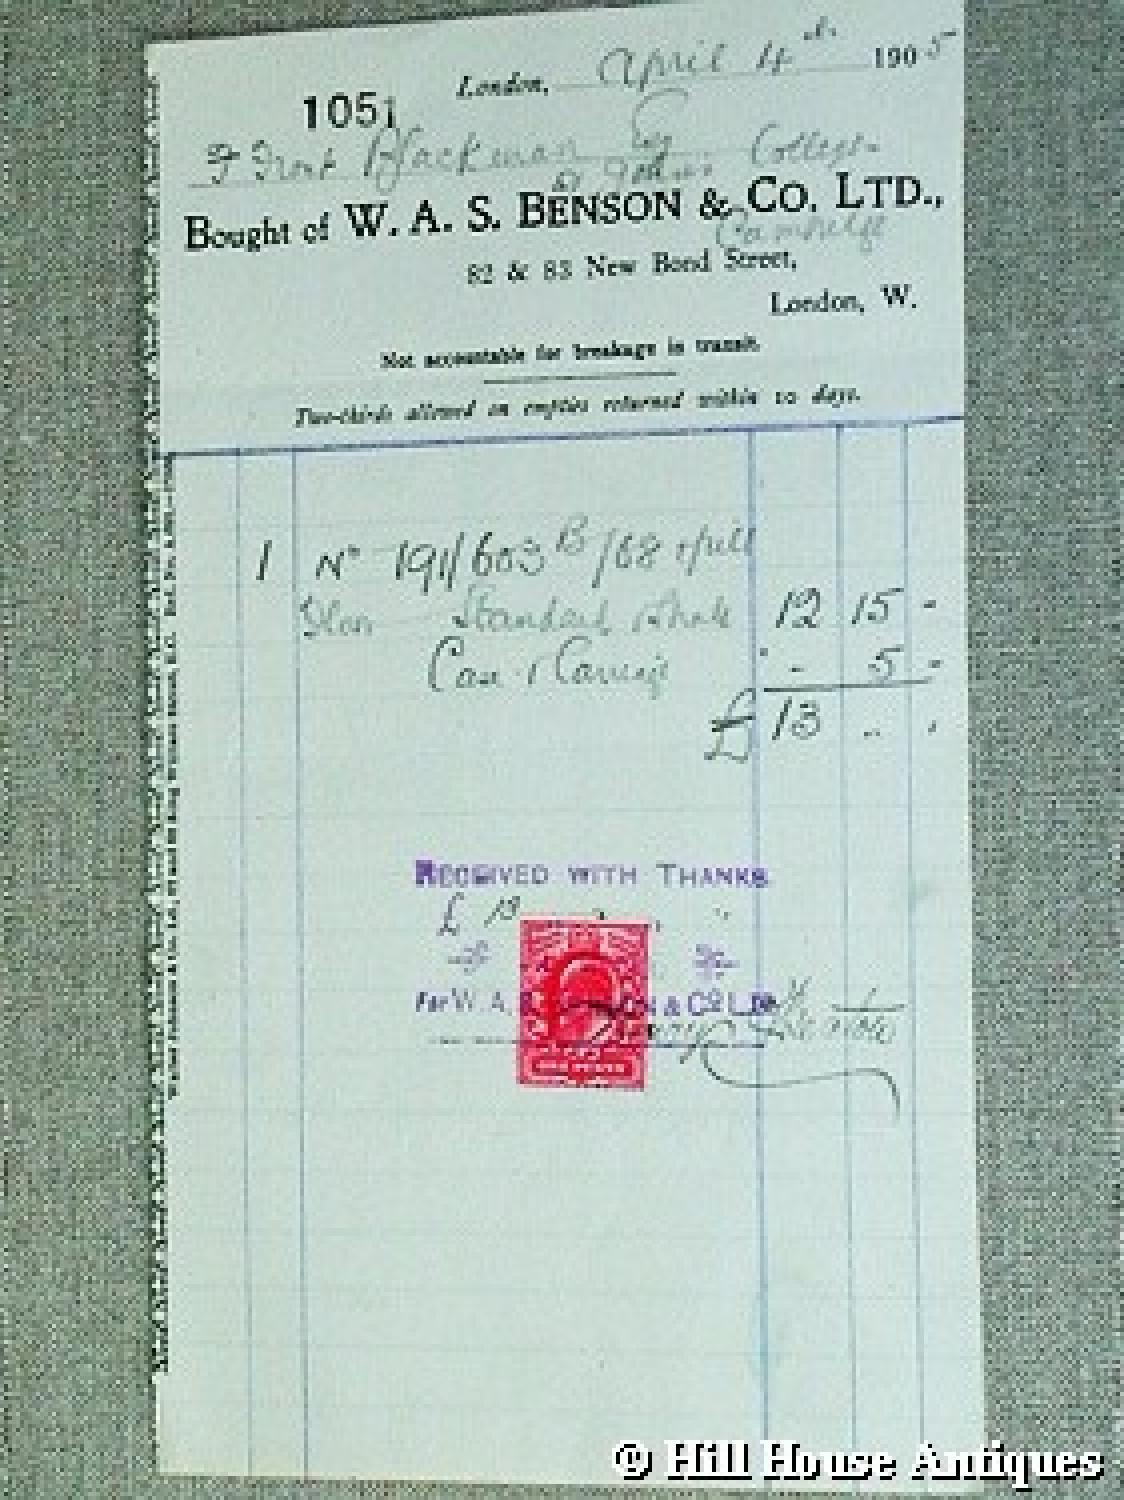 Original WAS Benson bill/receipt